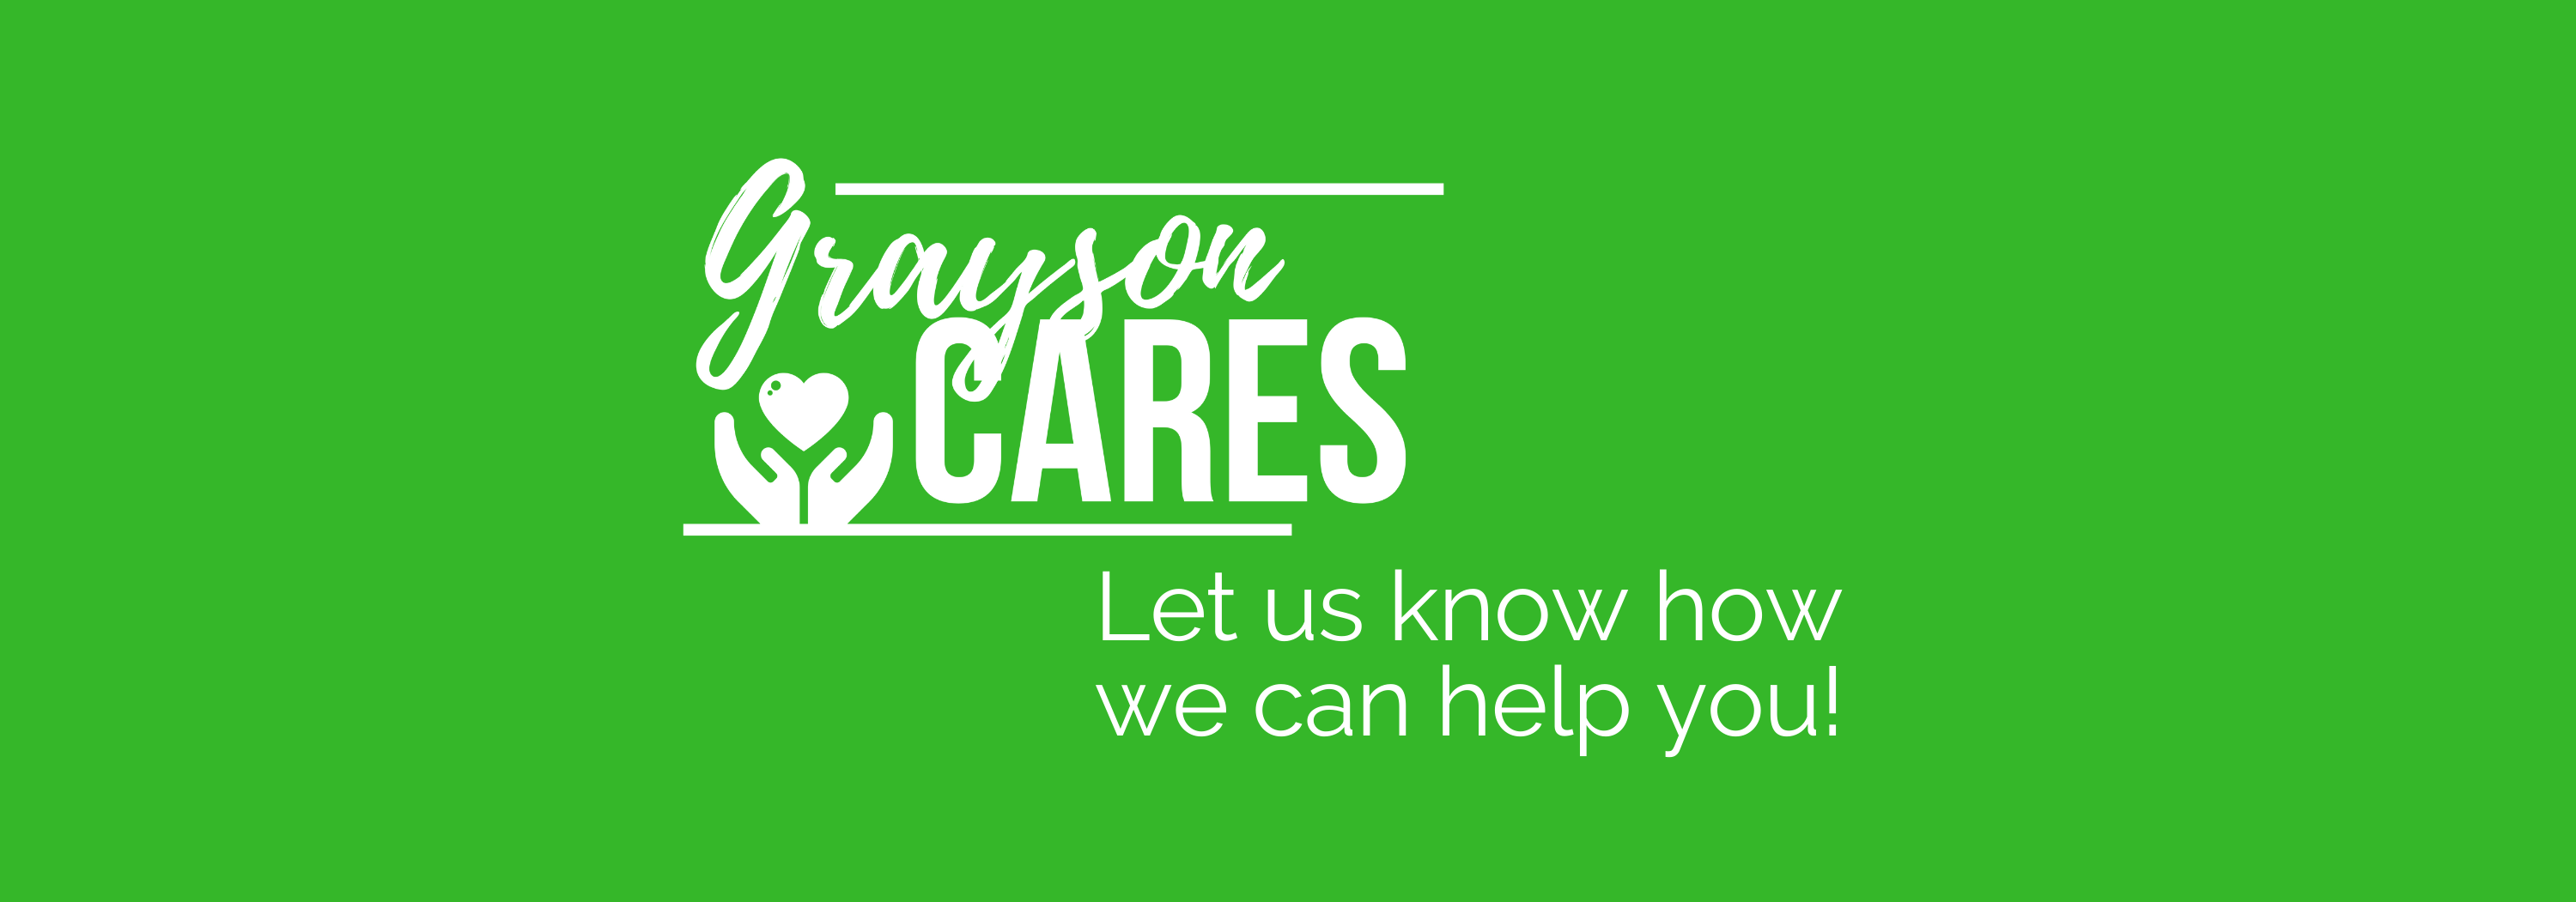 Grayson Cares - Let us know how we can help you!